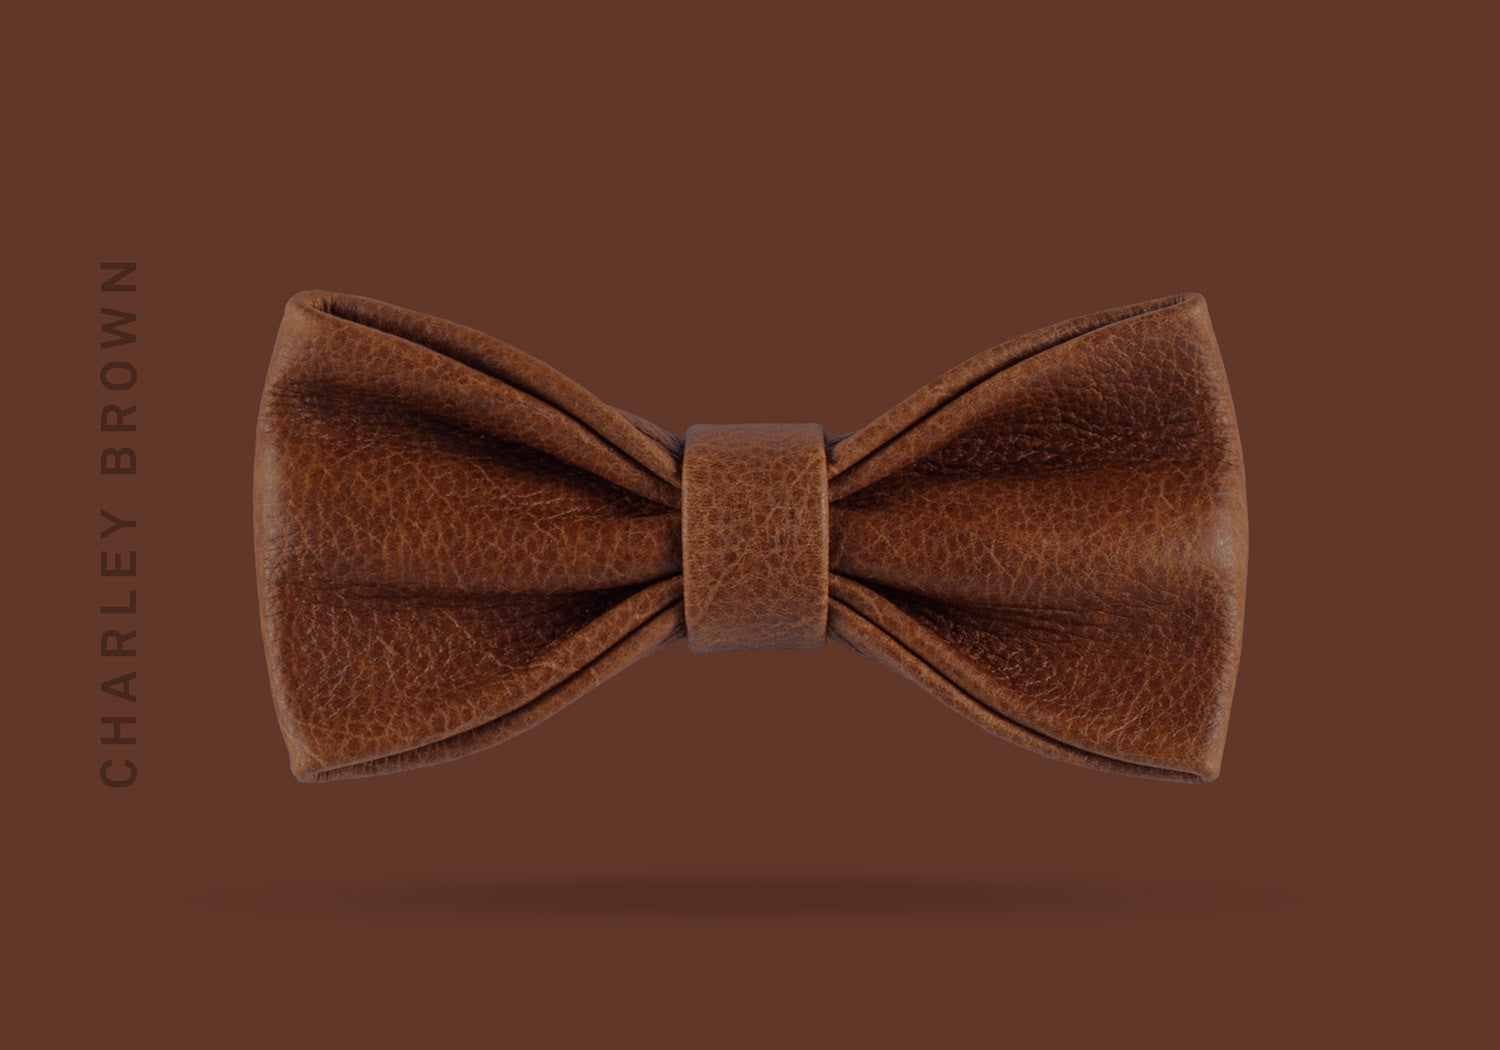 This charley brown WEEF handmade leather bow is a great present or gift idea for dapper and stylish gentlemen for fathers day, valentines day or Christmas.